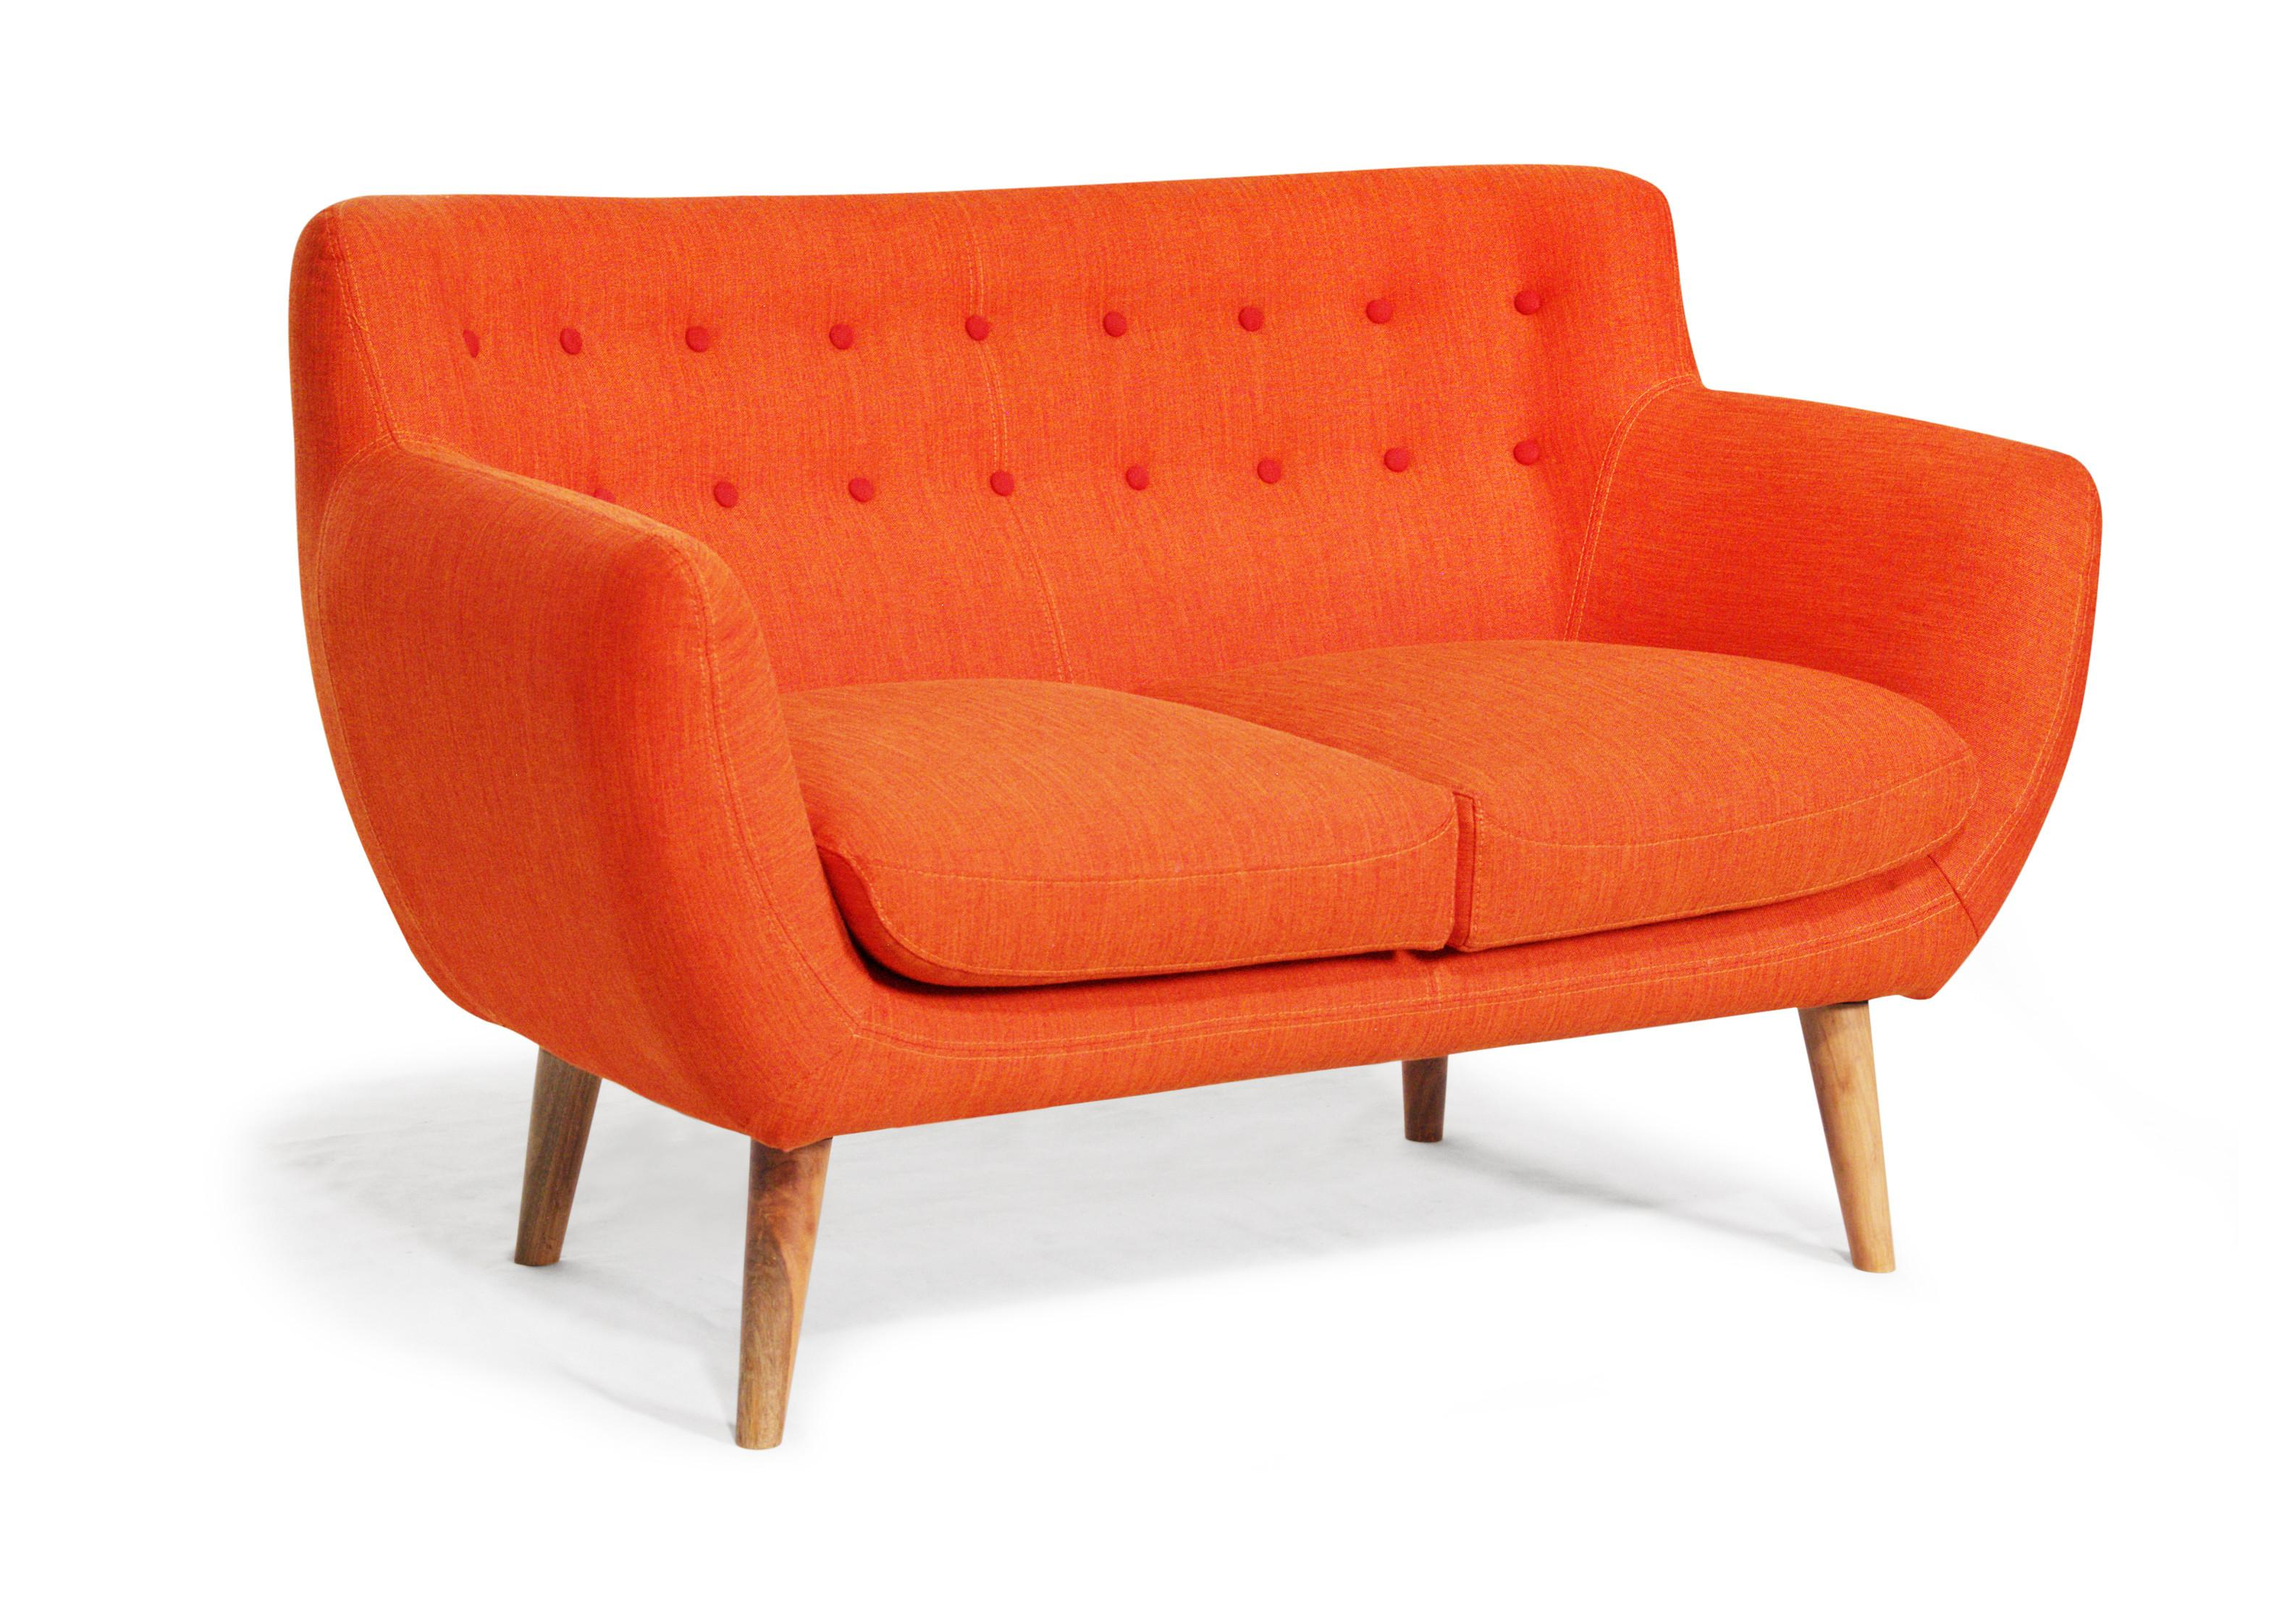 Furniture Cheap Couch Elegant Comfy Orange Leather Couches